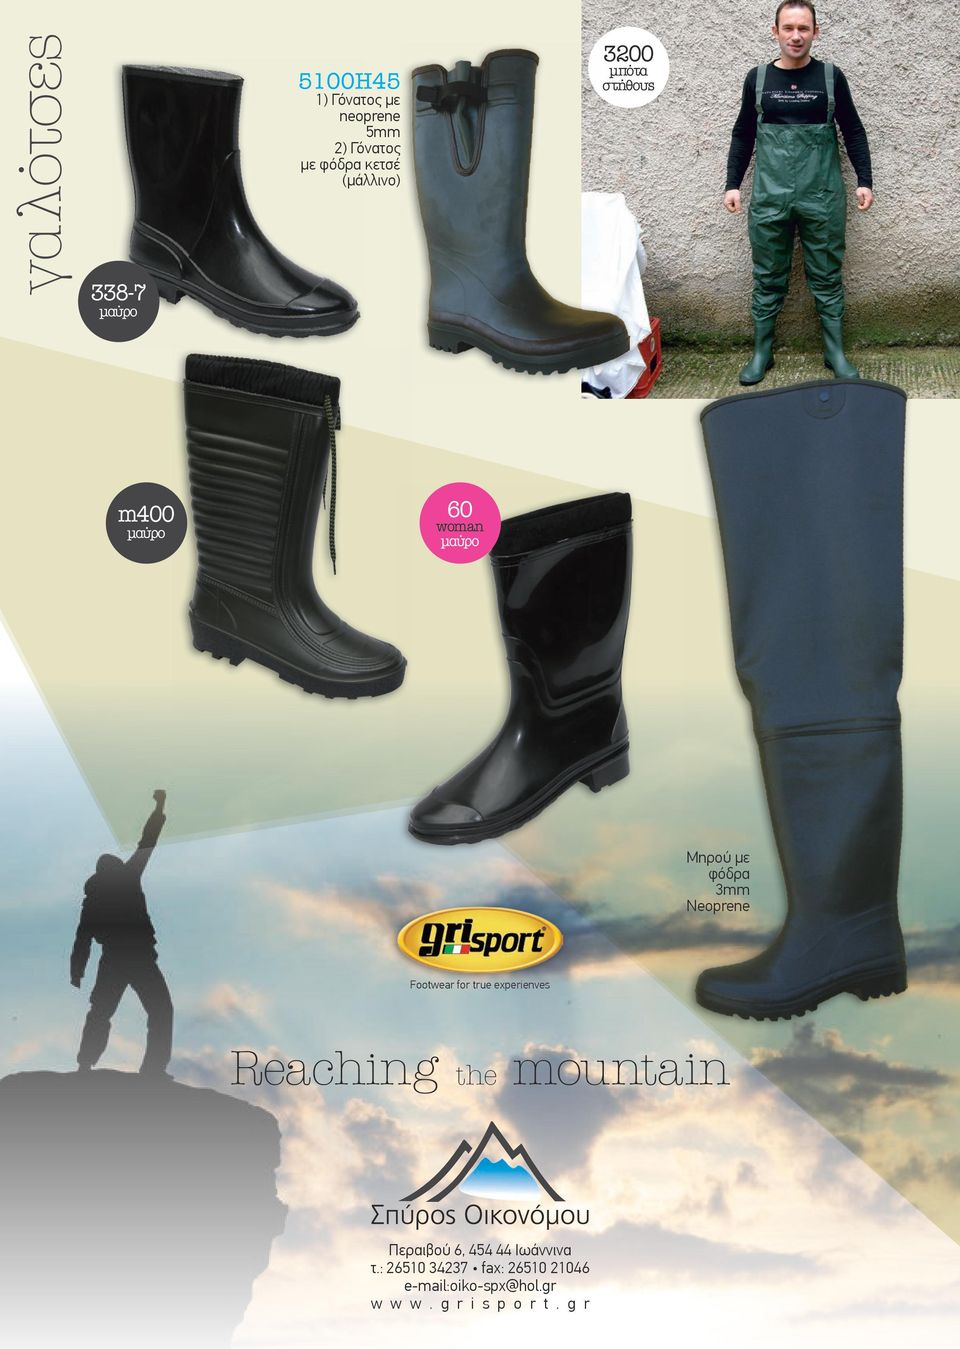 Footwear for true experienves Reaching the mountain Περαιβού 6, 454 44